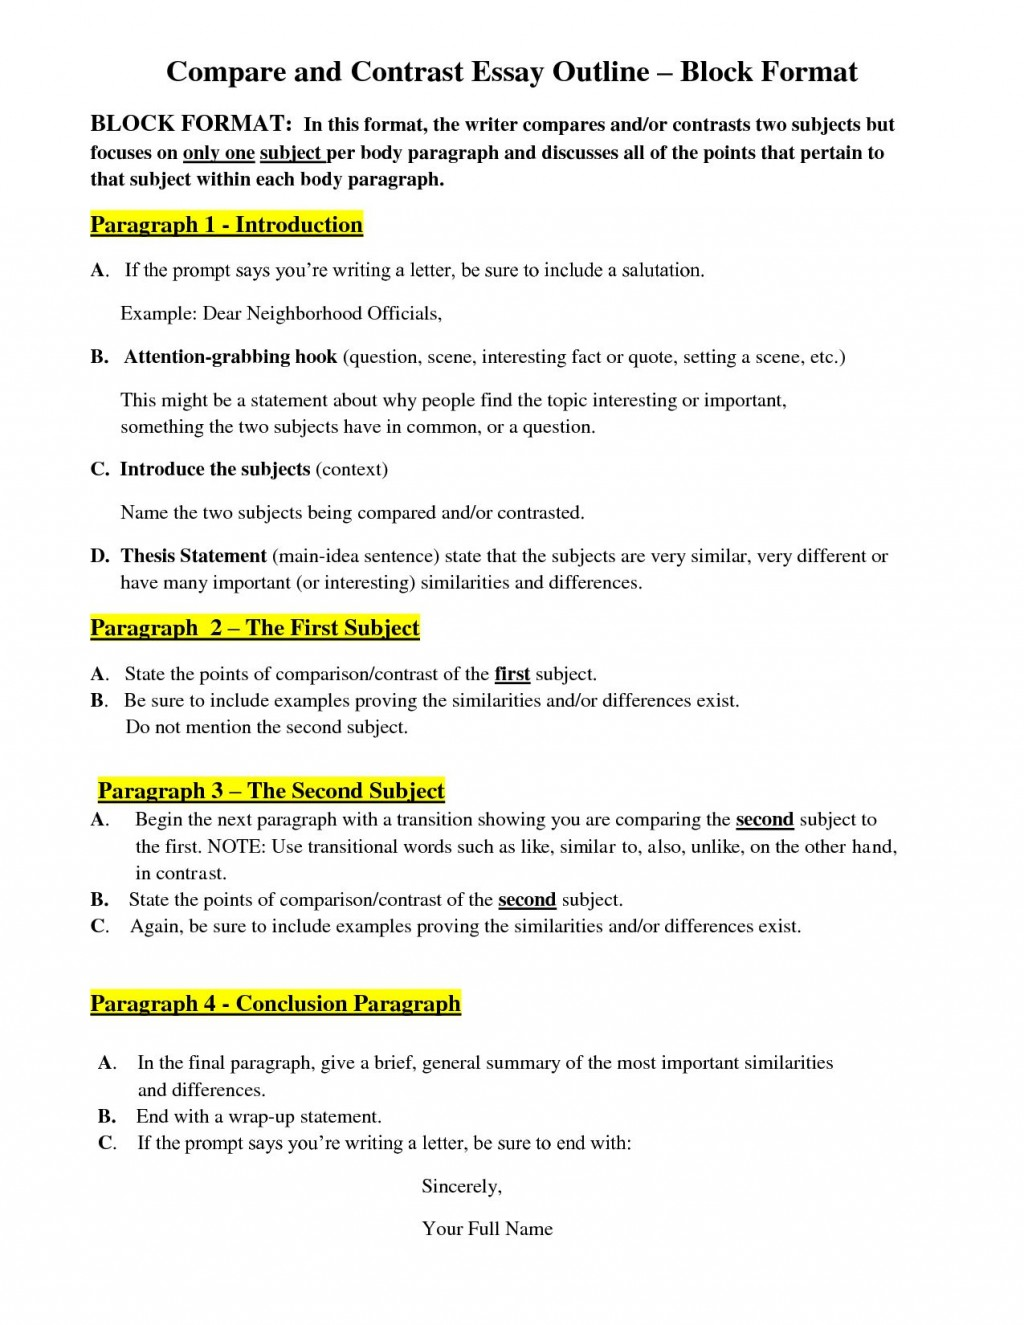 006 Contrast Essay Topics Example Astounding Comparison Middle School Compare For Elementary Students Prompts Large